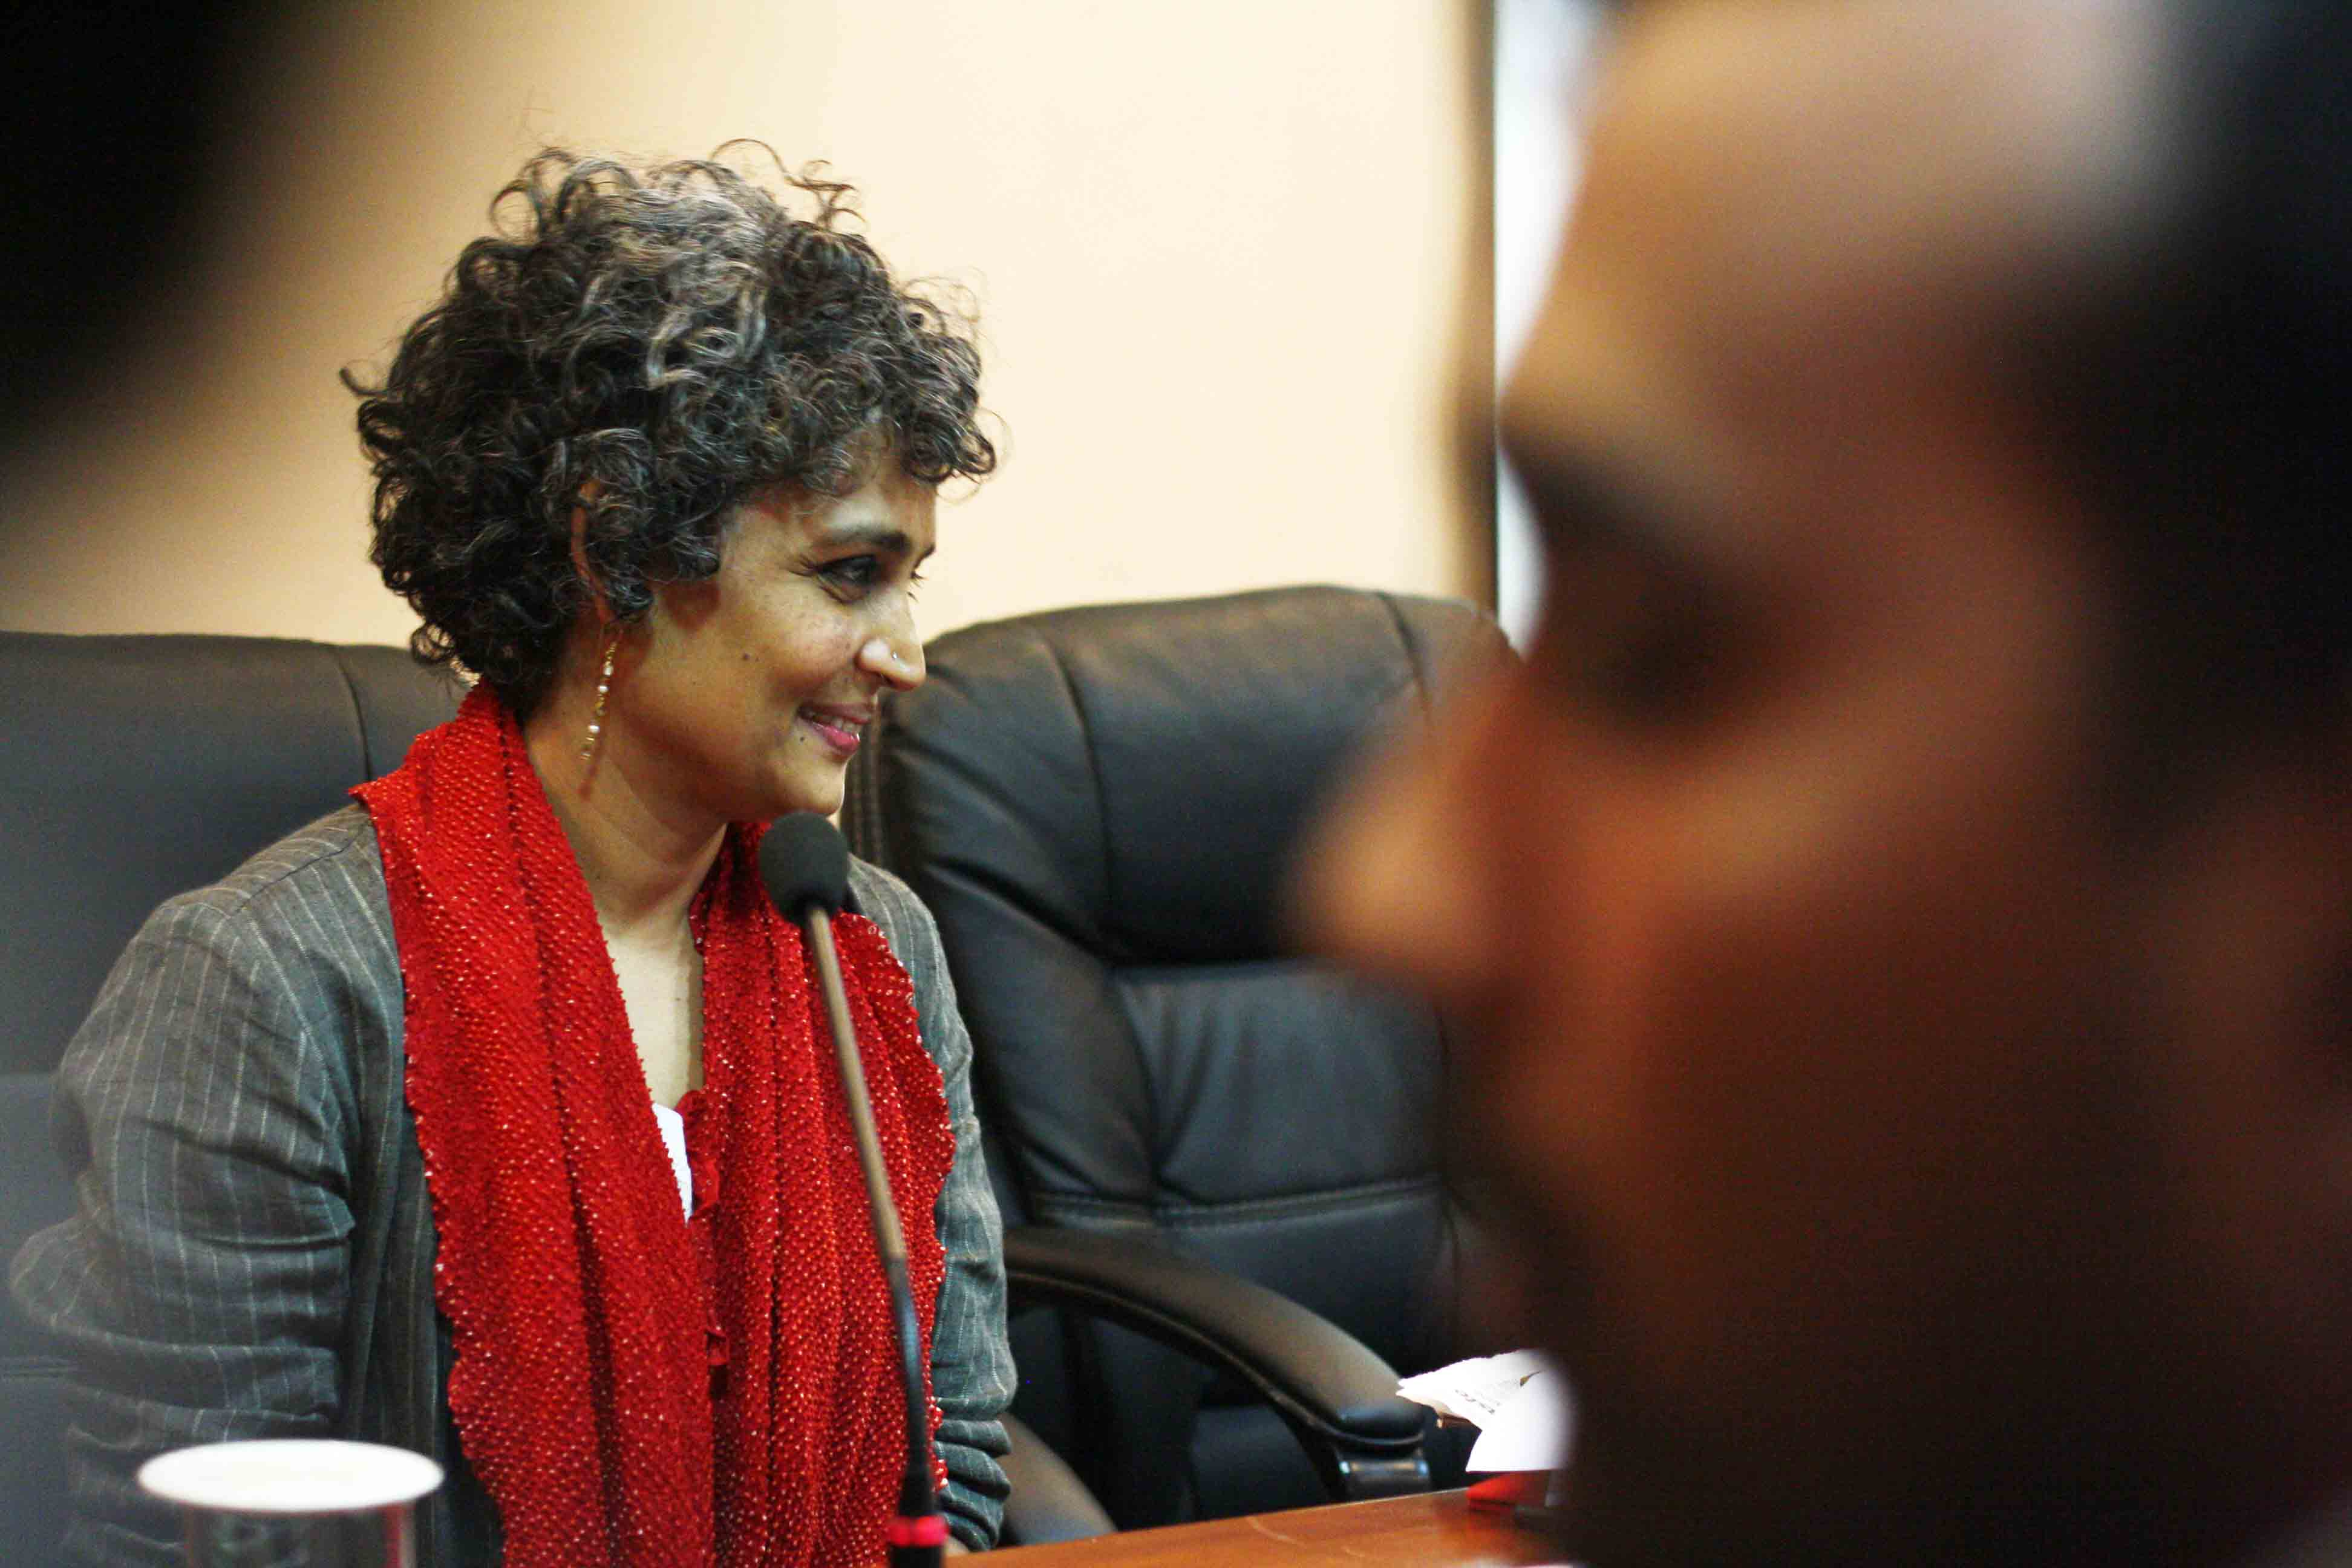 City Sighting – Arundhati Roy, Jamia Millia Islamia University